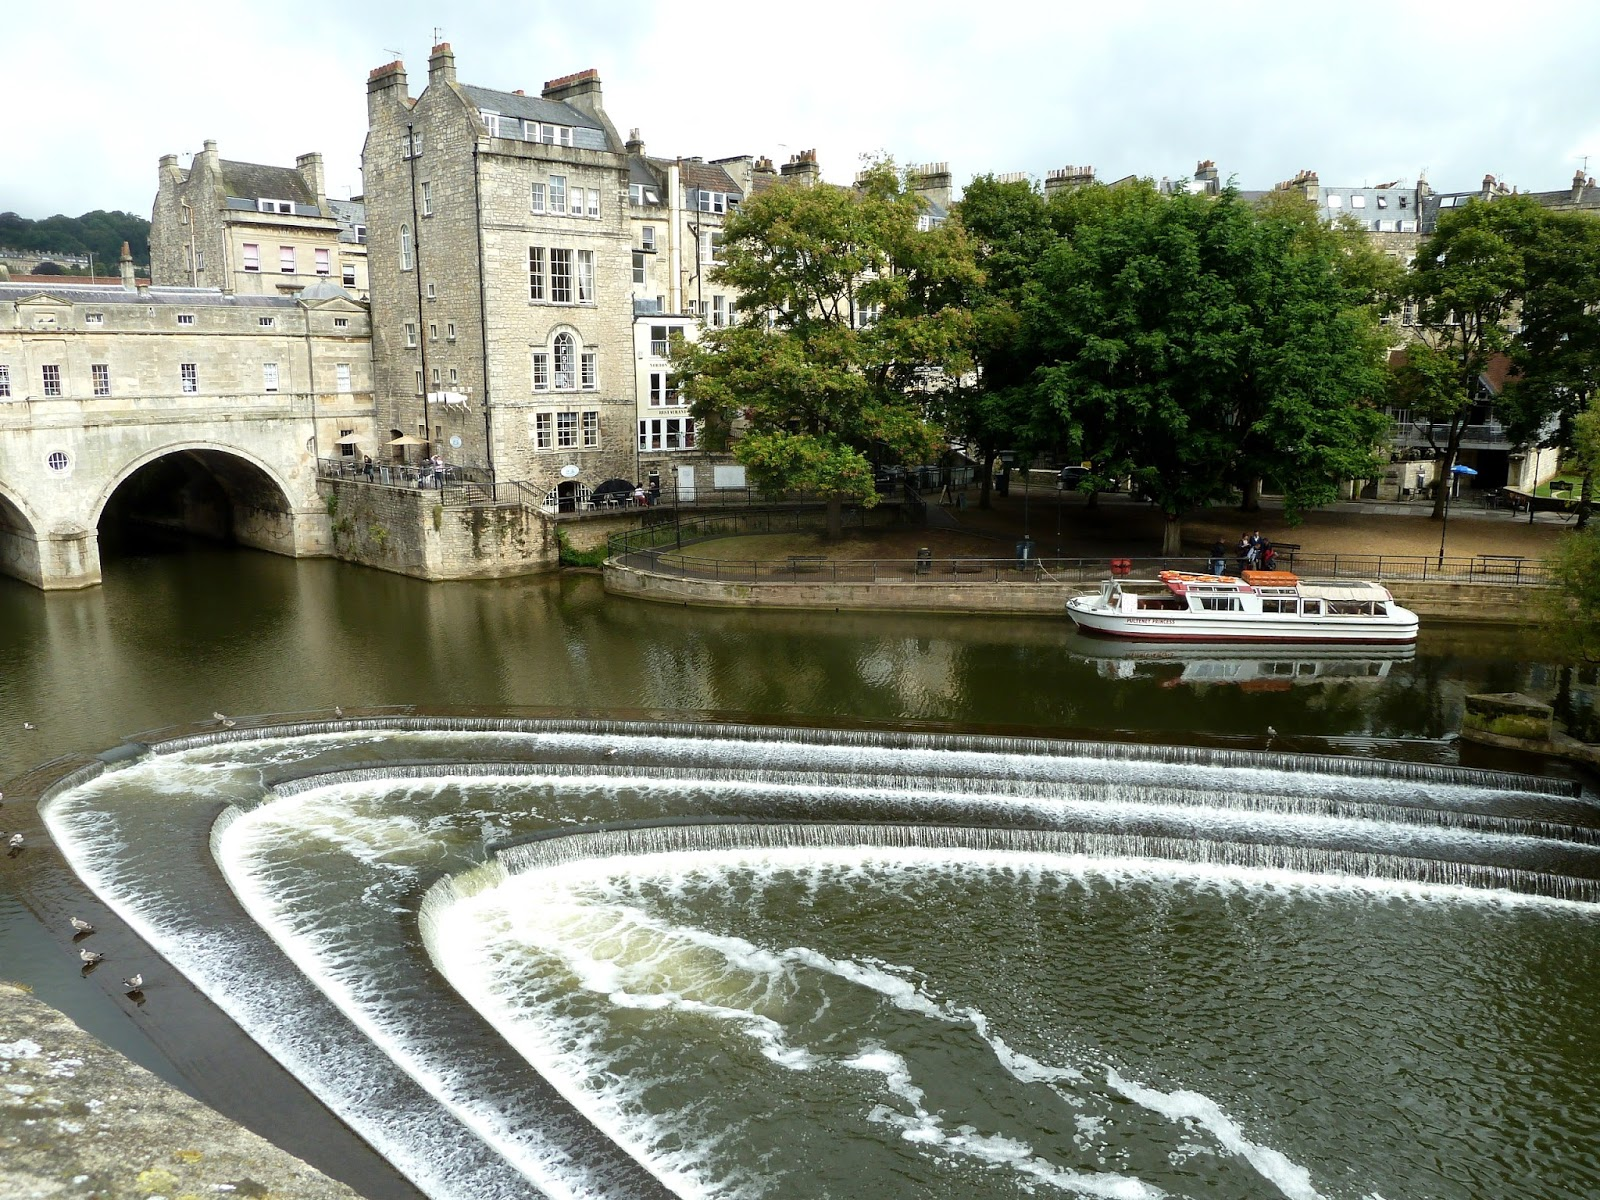 pulteney chat sites The latest tweets from no15 great pulteney  bath indie chat @bathindiechat  who helped create some fab one-of-a-kind wall art in our top floor rooms.